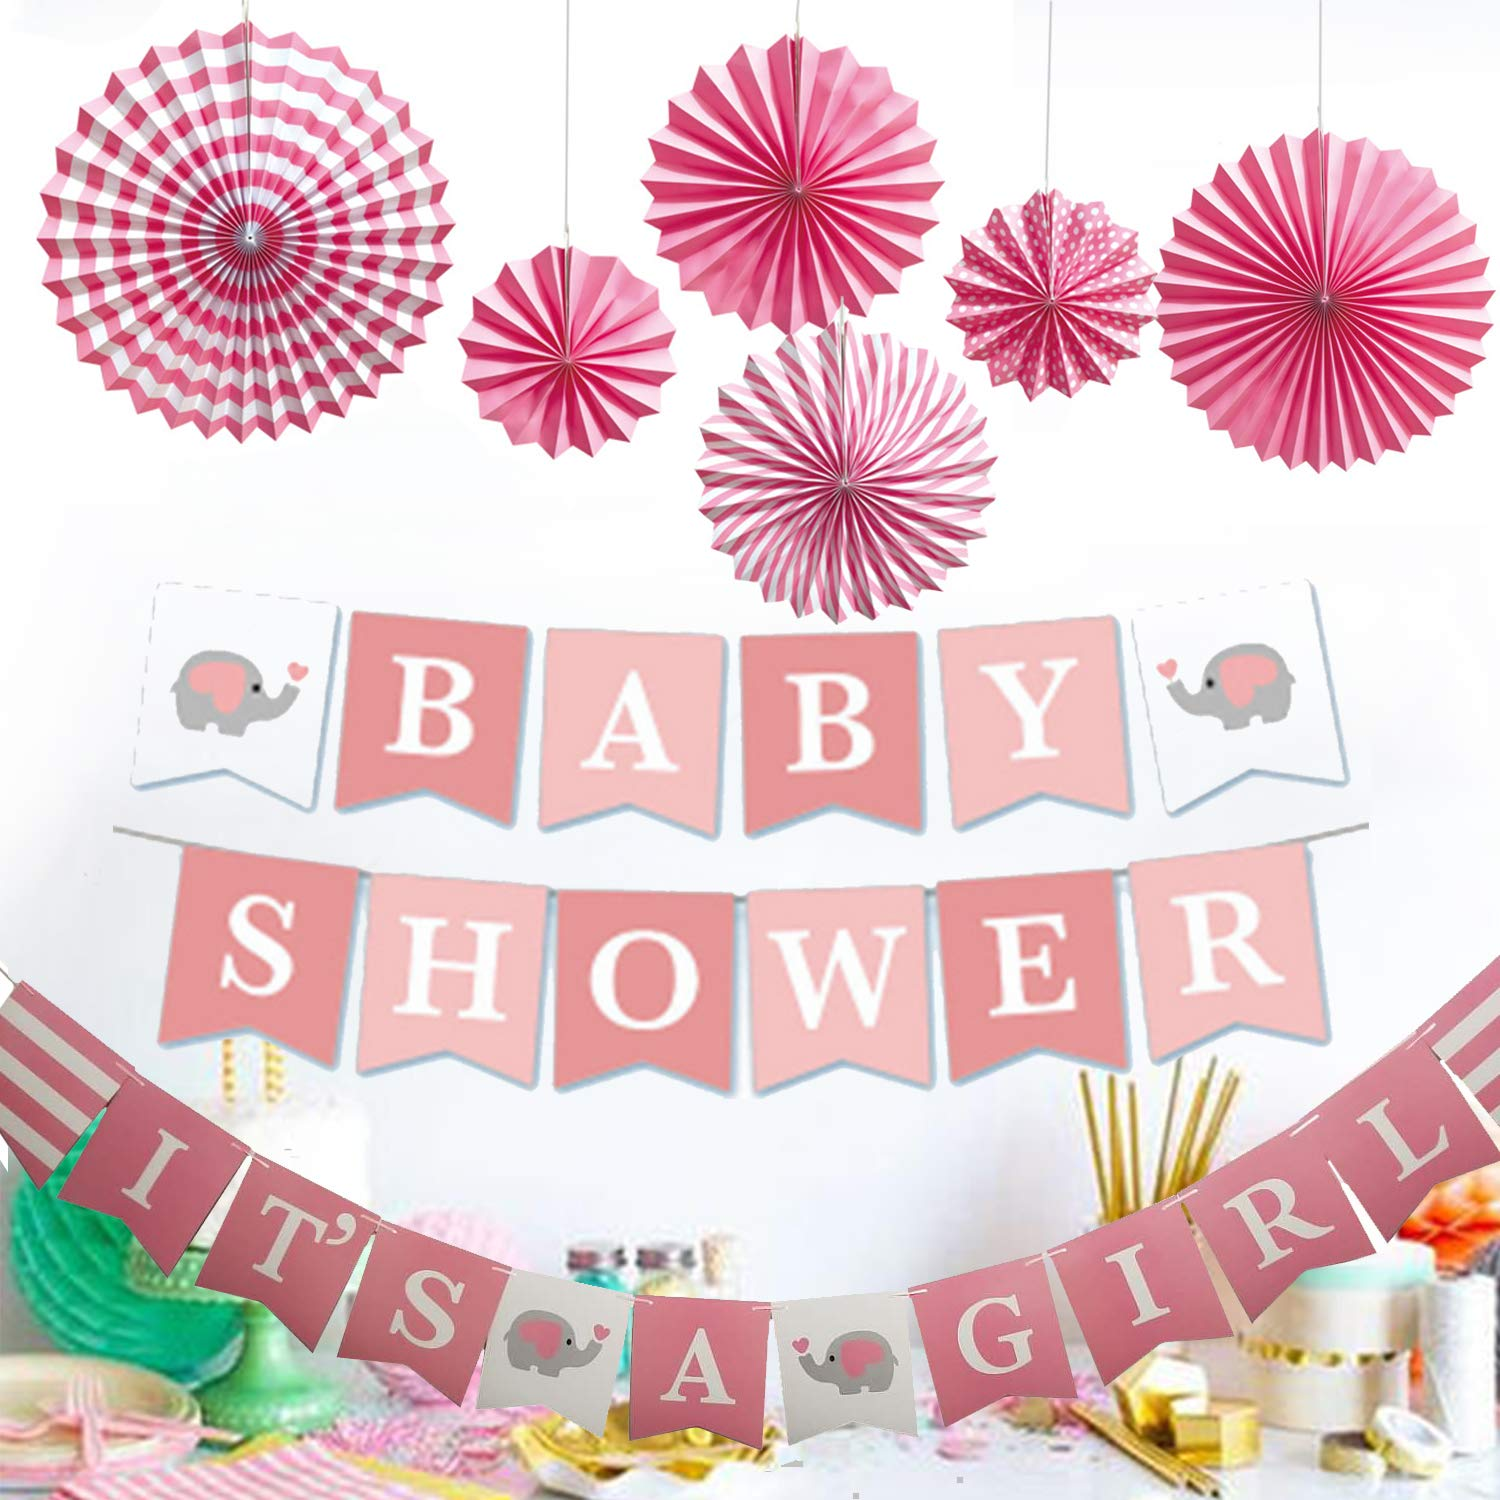 Elephant Baby Shower Party Supplies-It's a Girl Banner with Paper Fan for Girl Birthday Decoration White Pink Grey